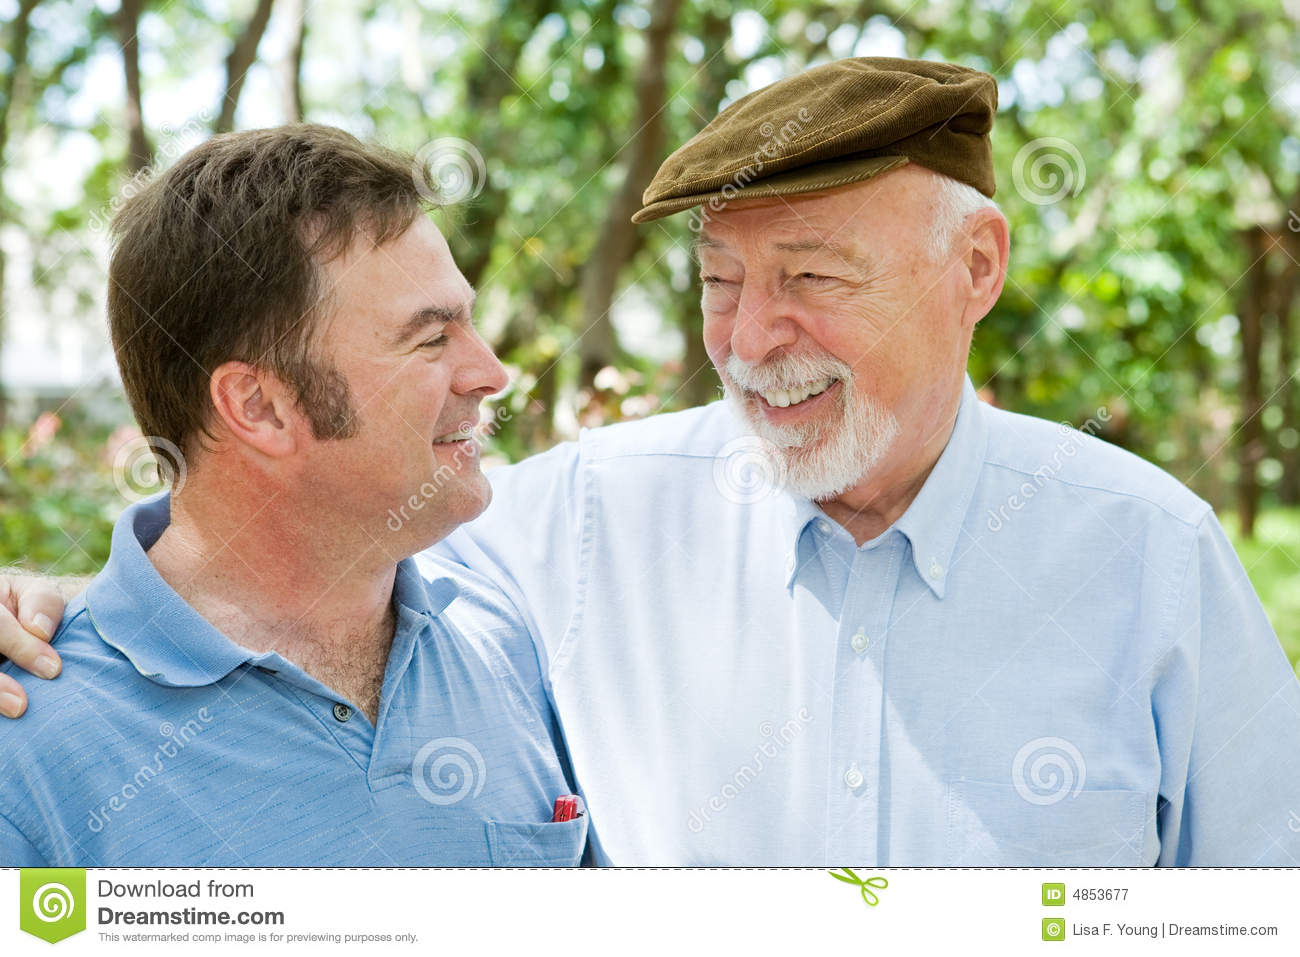 Senior father and adult son laughing together in the park.